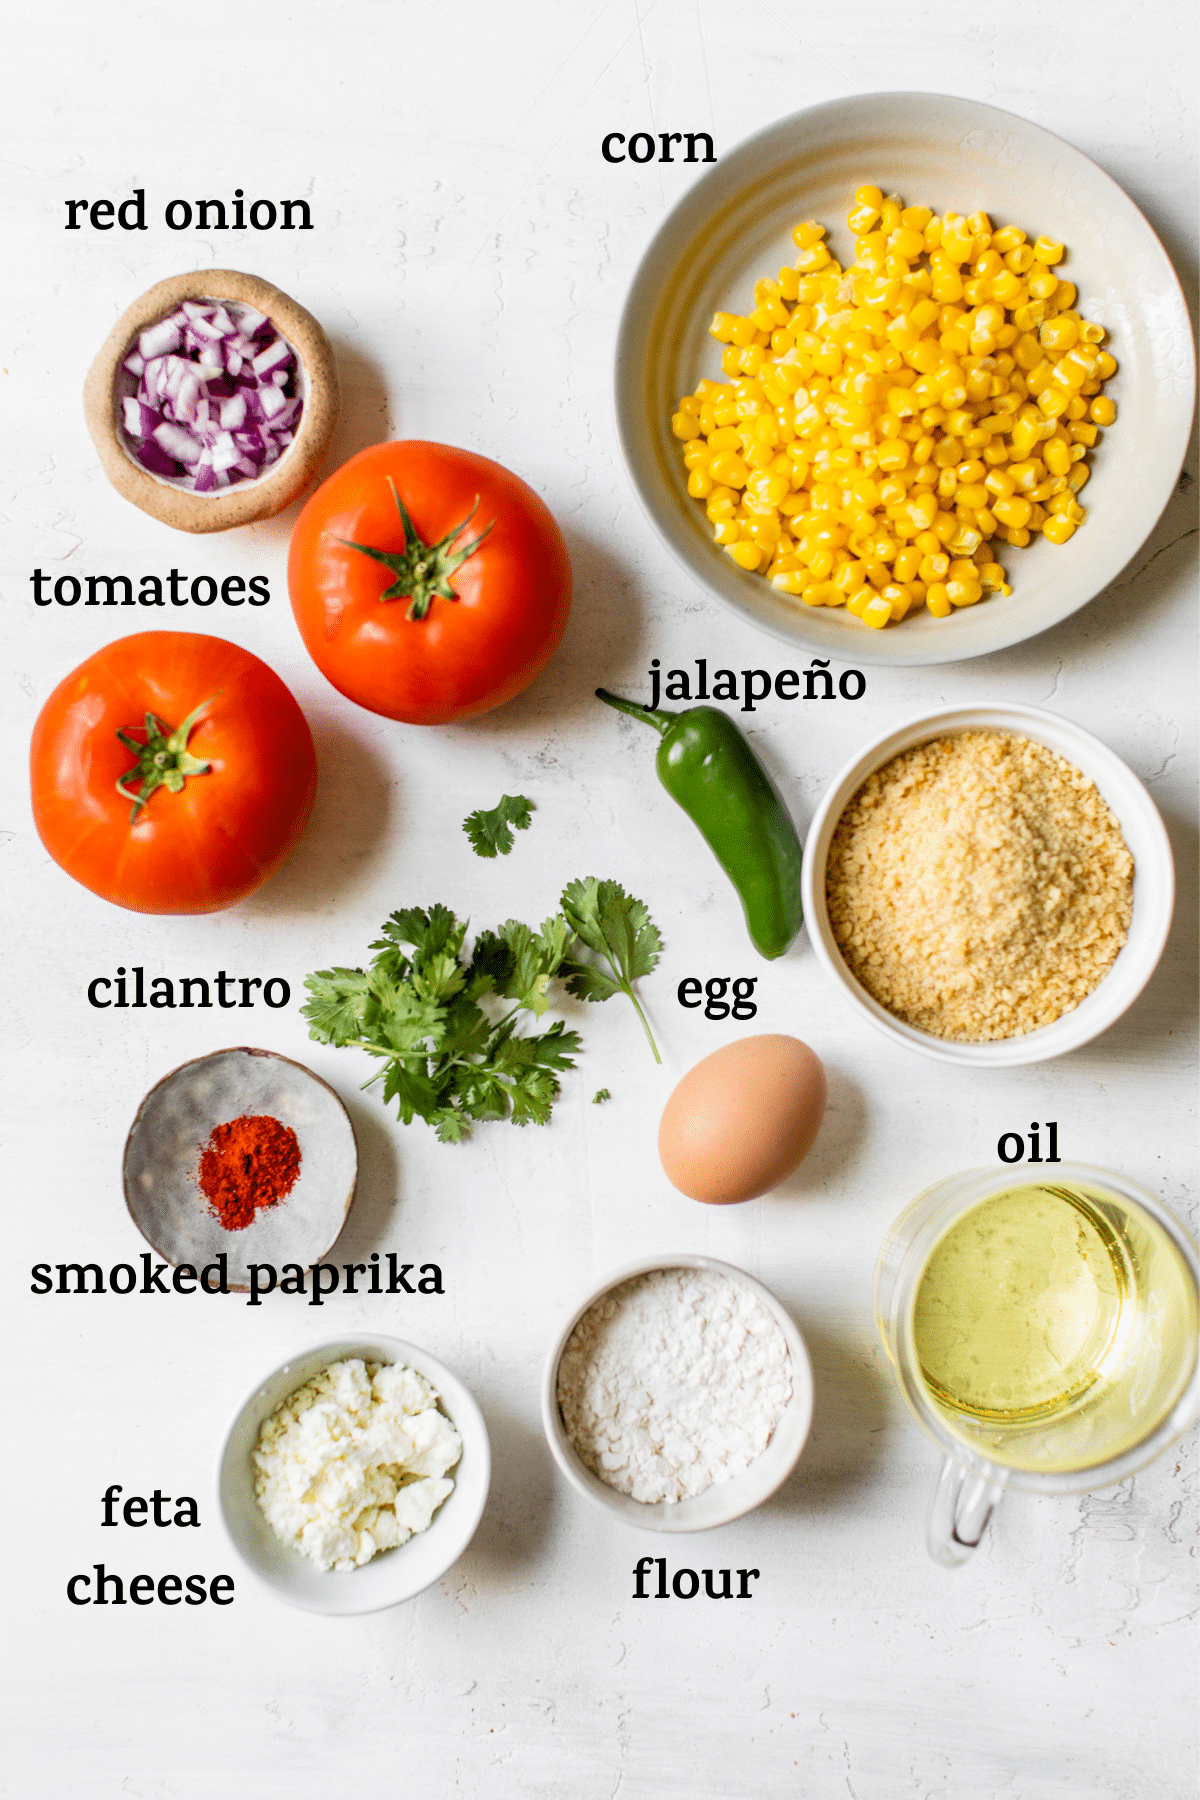 ingredients on a table with text overlay